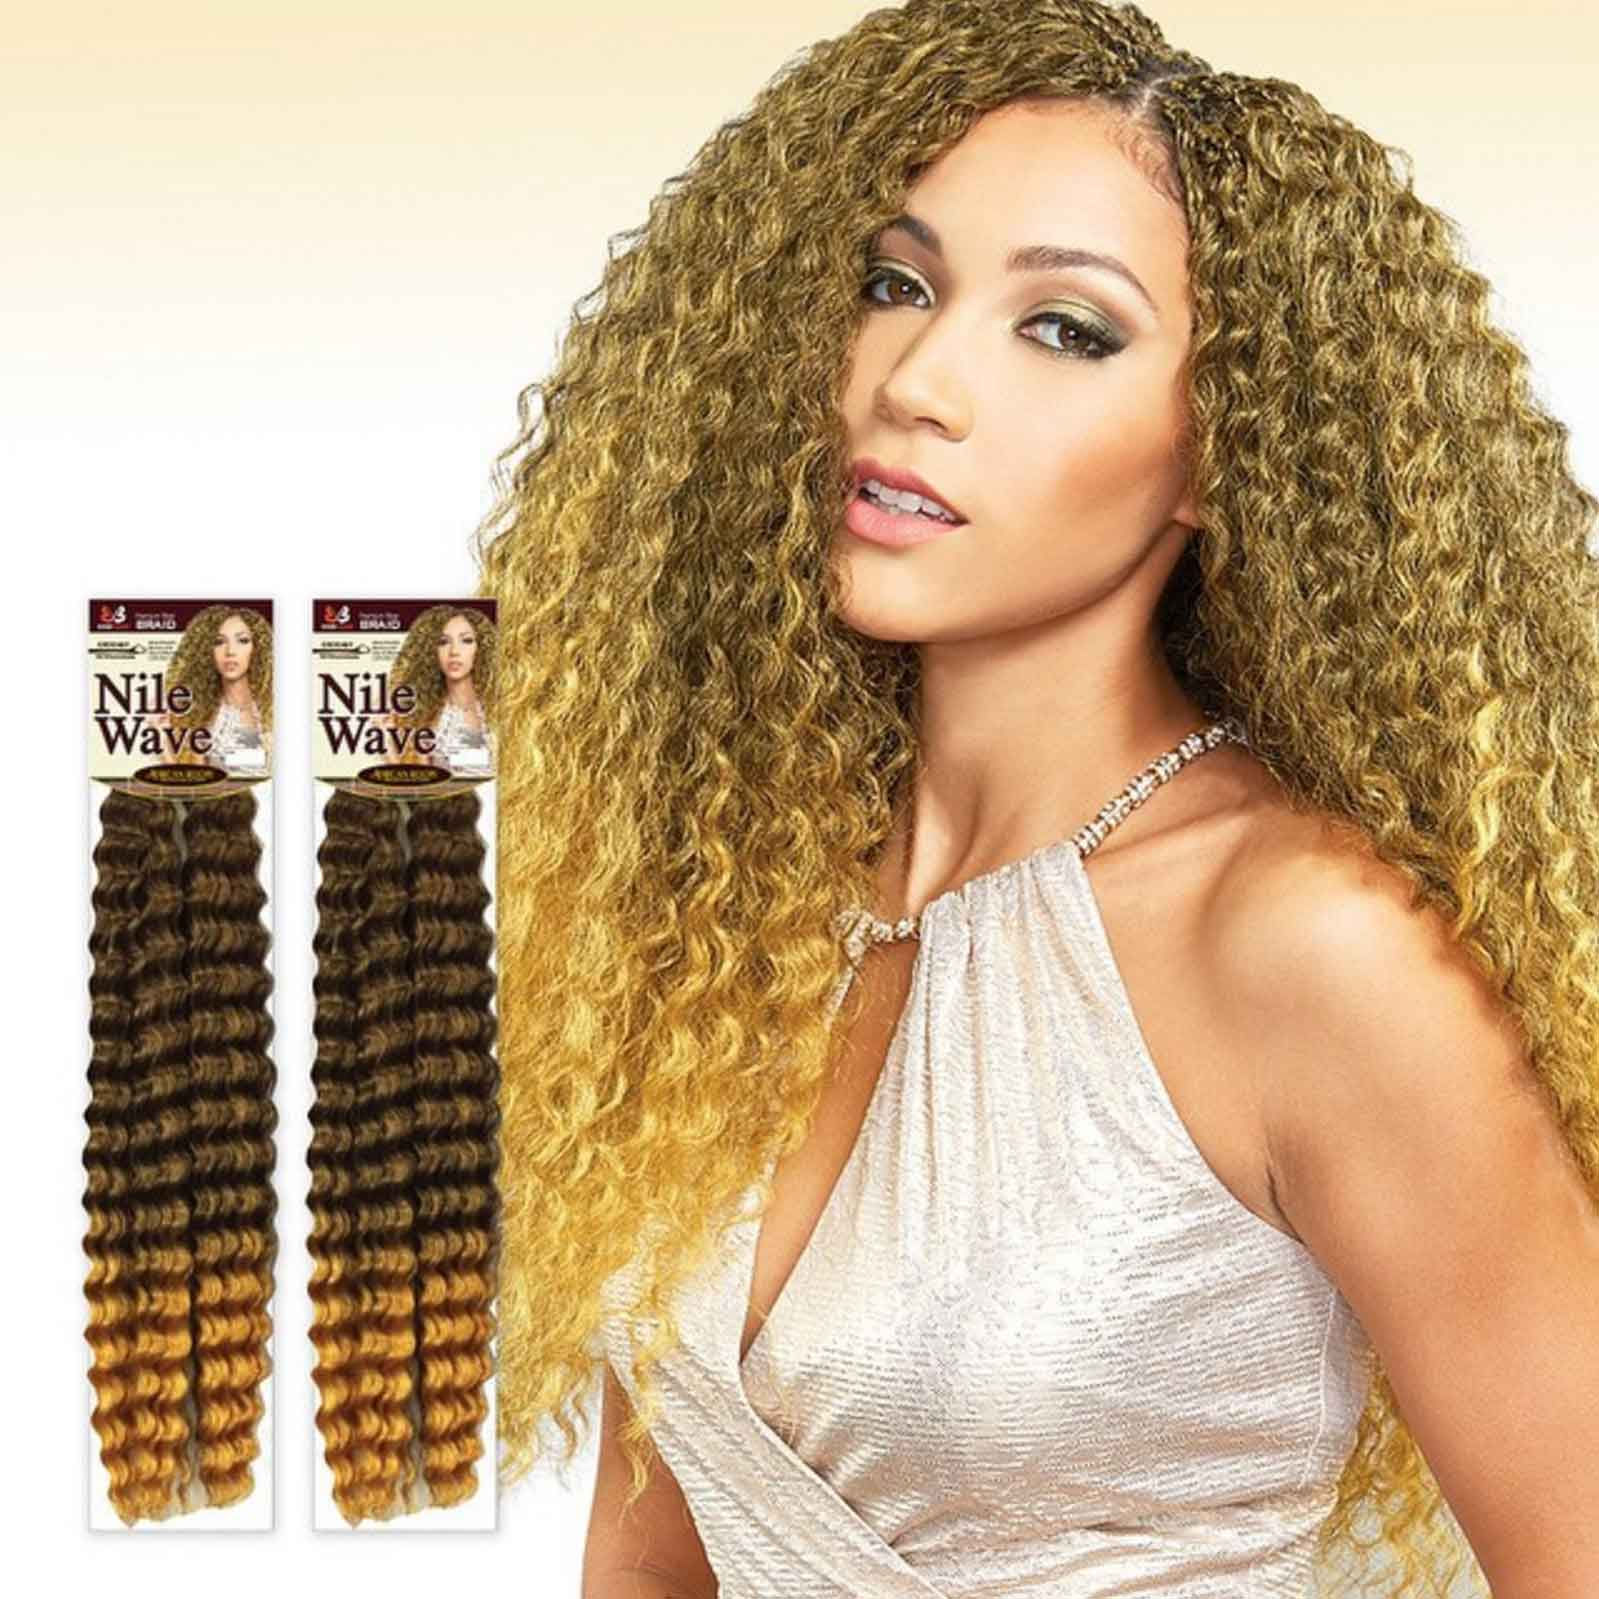 NILE WAVE CROCHET BRAIDS